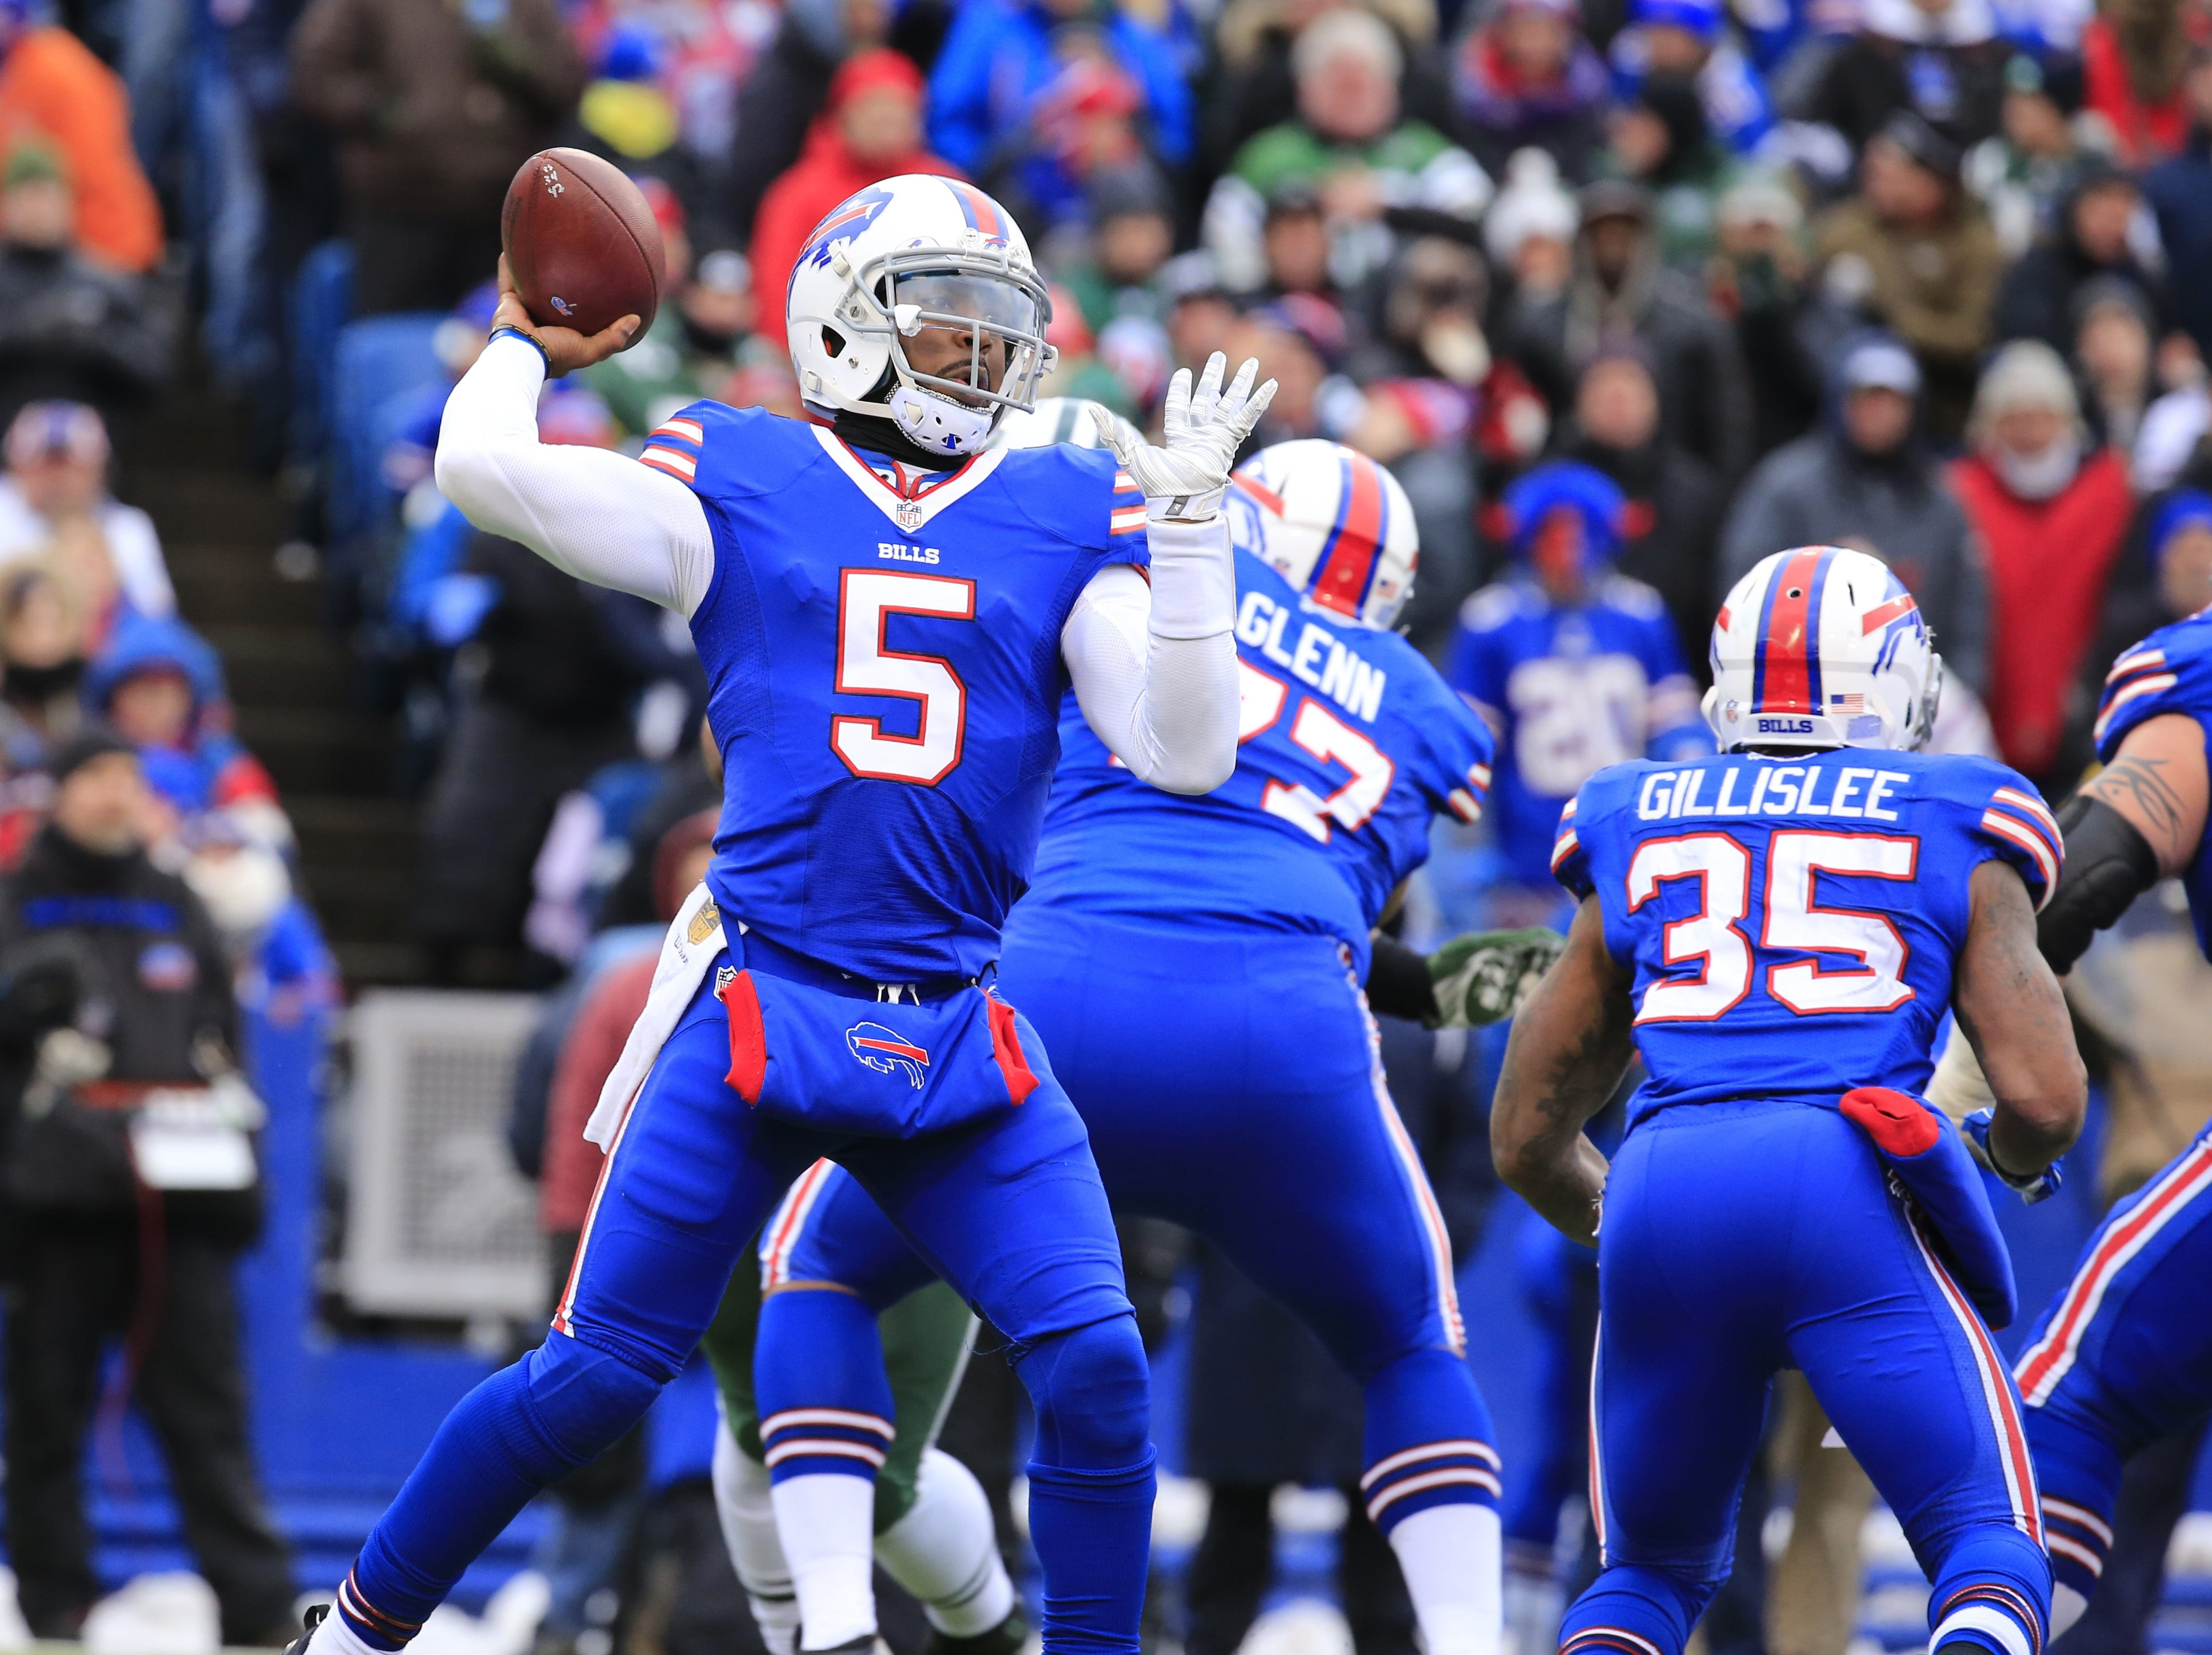 Buffalo Bills Tyrod Taylor throws against the New York Jets during third quarter action  at Ralph Wilson Stadium on Sunday, Jan. 3, 2016.  (Harry Scull Jr./Buffalo News)